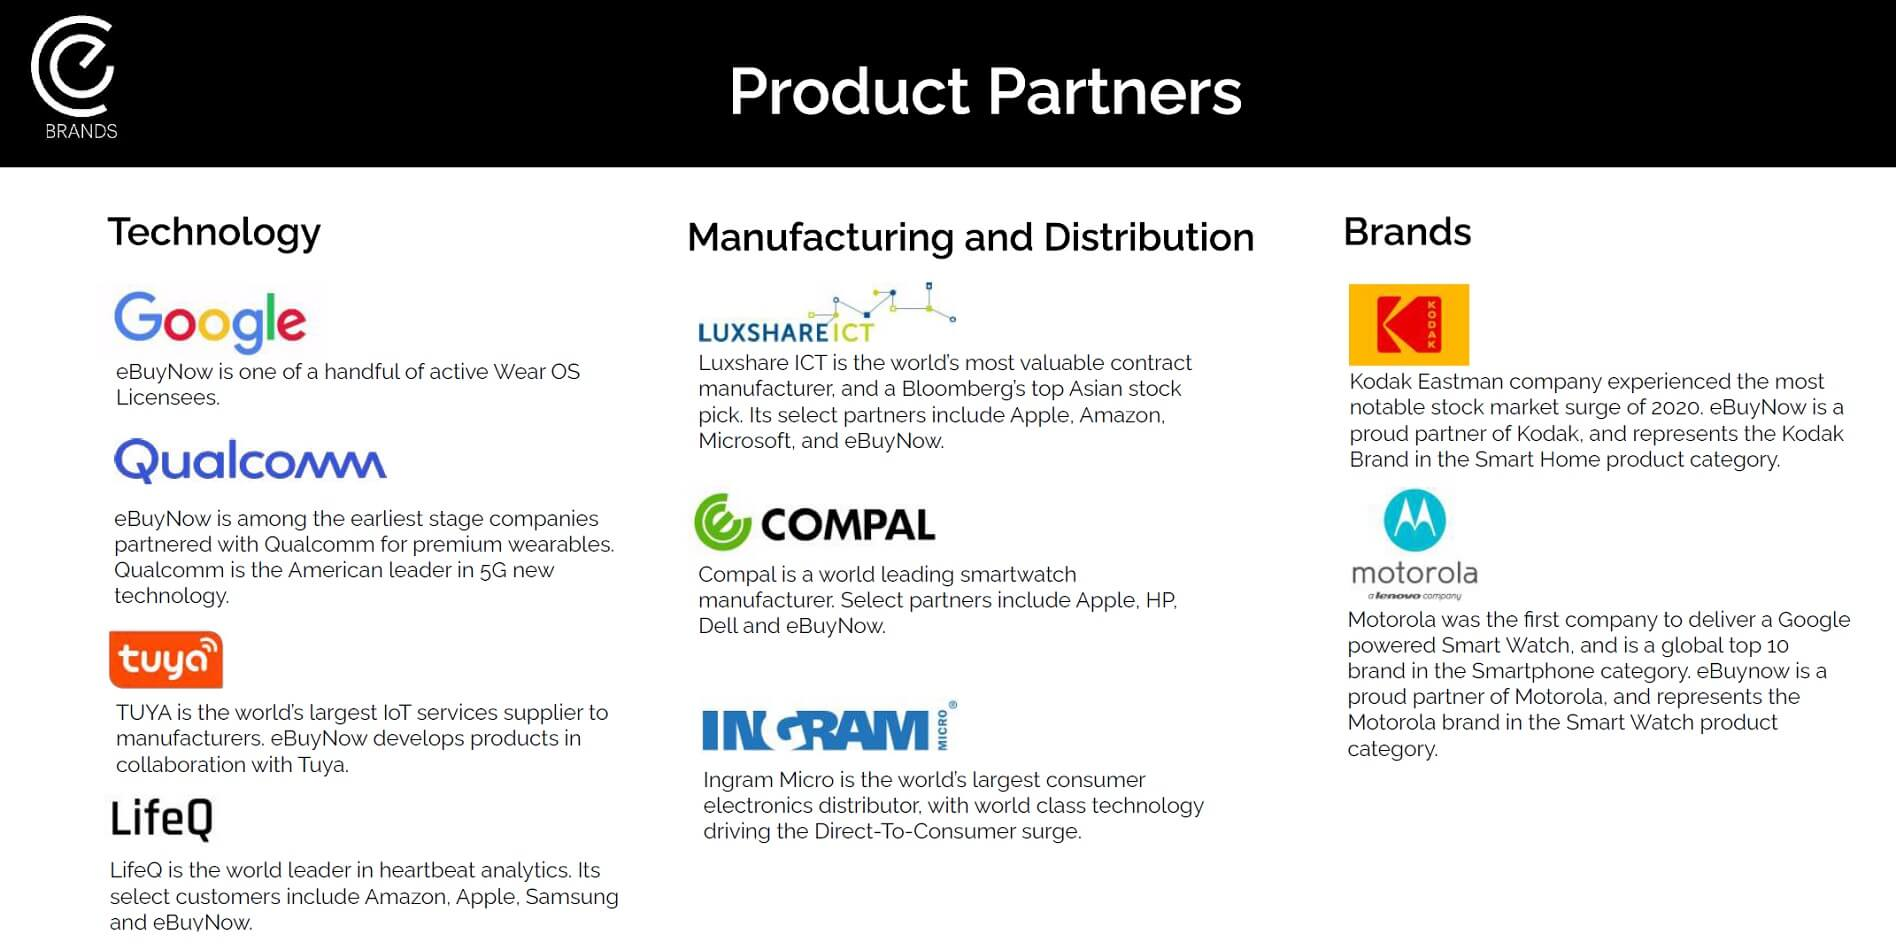 Motorola product partners